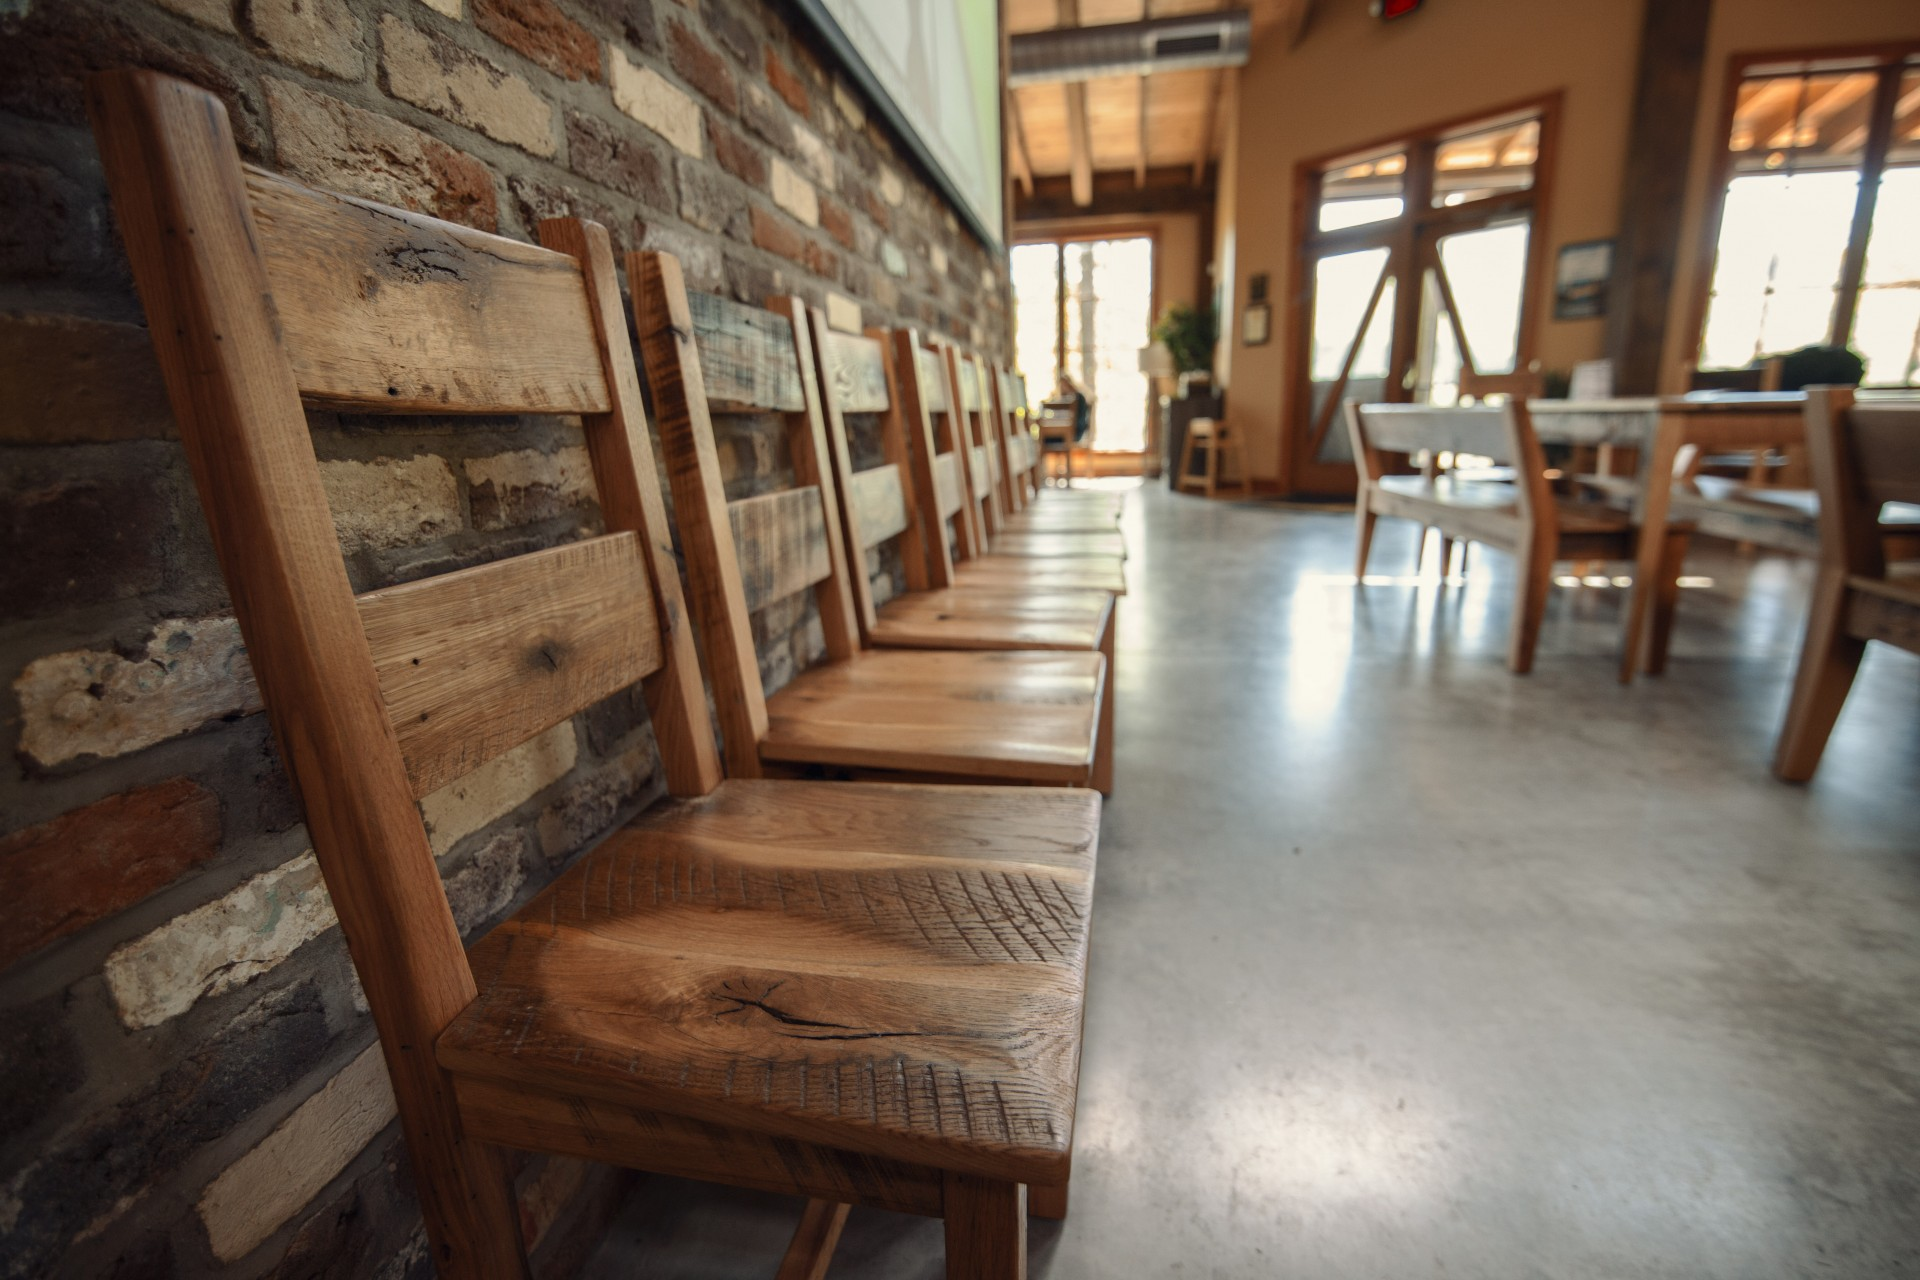 Bold Rock Hard Cider Is Handcrafted From Locally Grown Apples In Virginia  And North Carolina. Rustic Restaurant Furniture Outfitted One Of Their  Beautiful ...